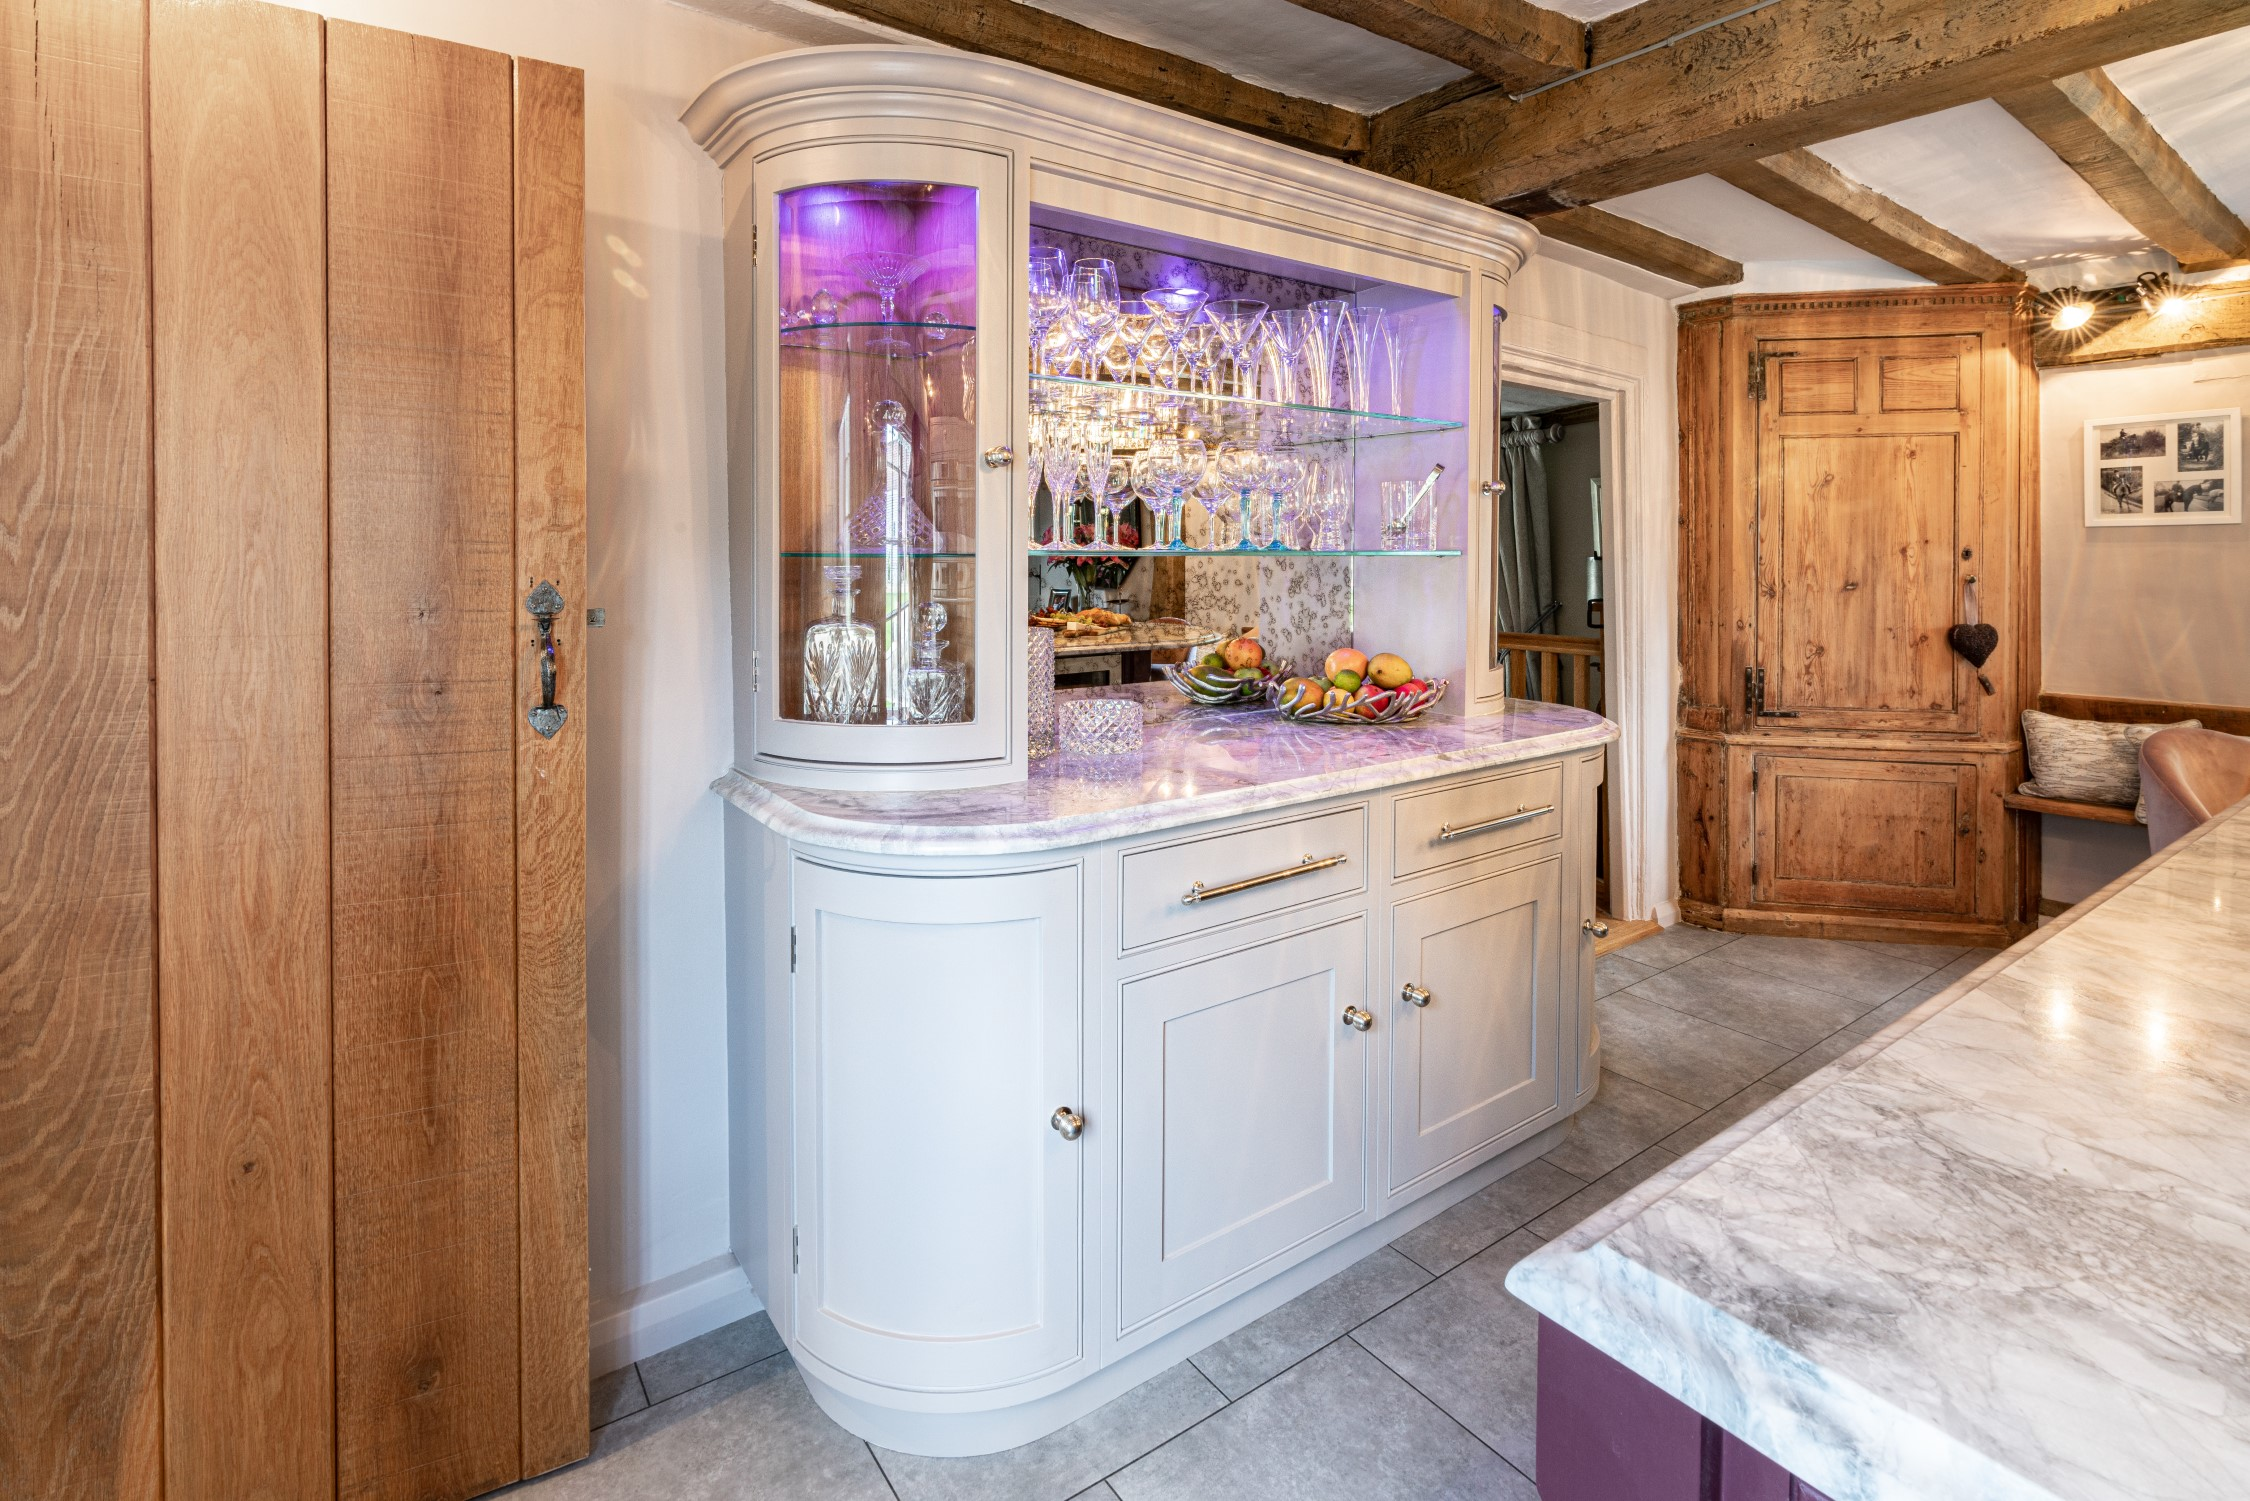 Curved Handmade Cabinetry A Smart Kitchen Design Nicholas Bridger